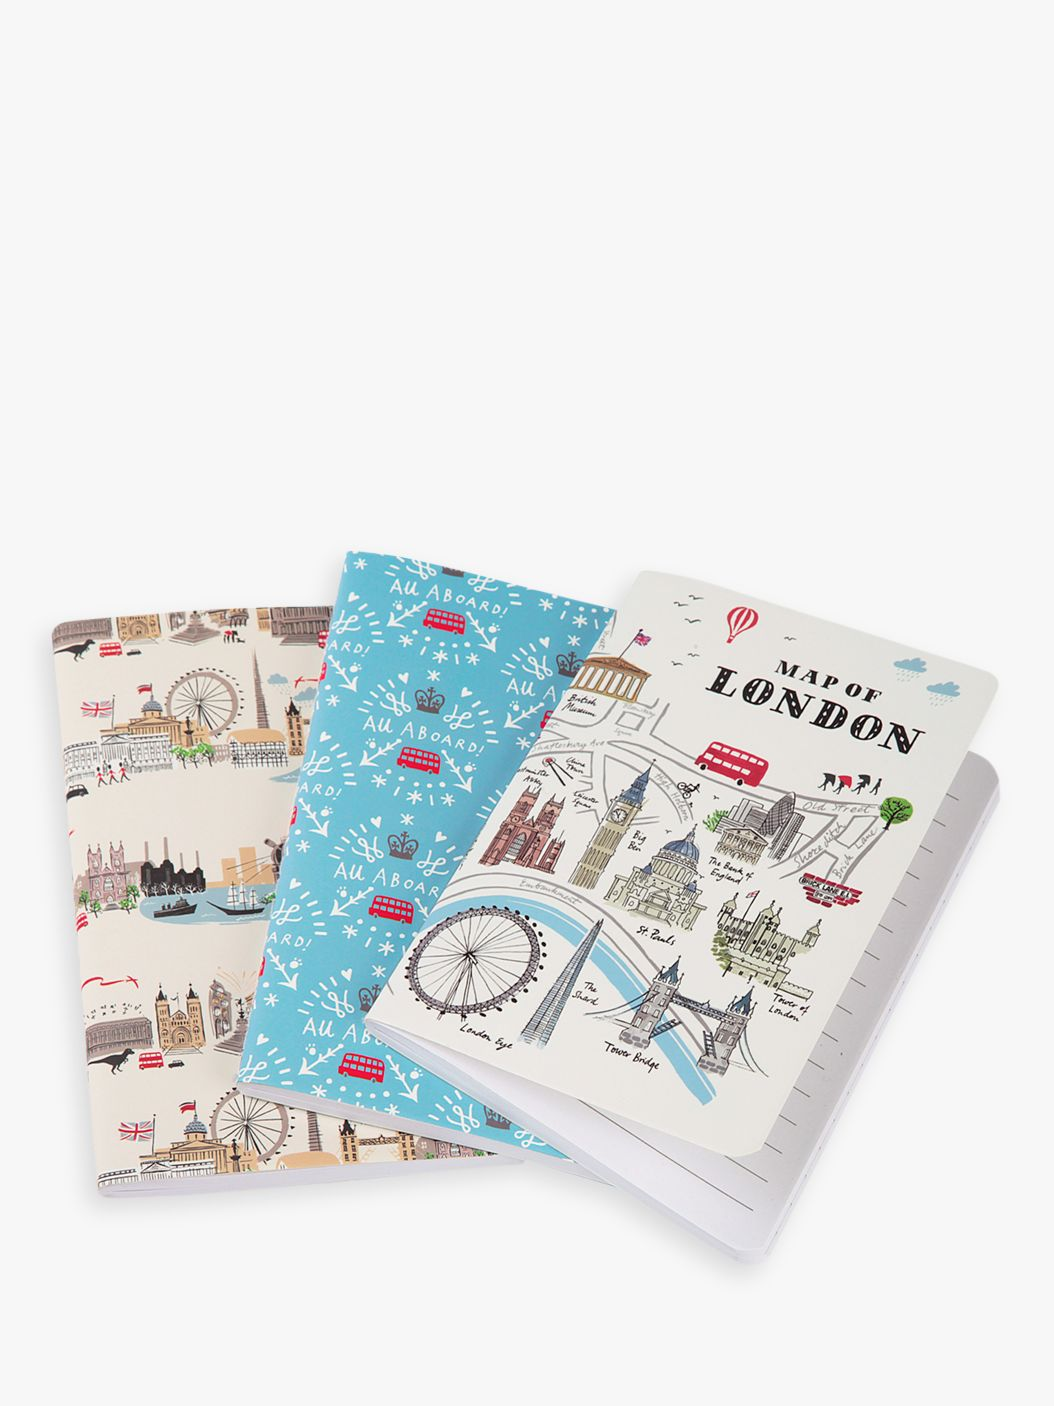 Alice Tait Alice Tait London Notebooks, Pack of 3